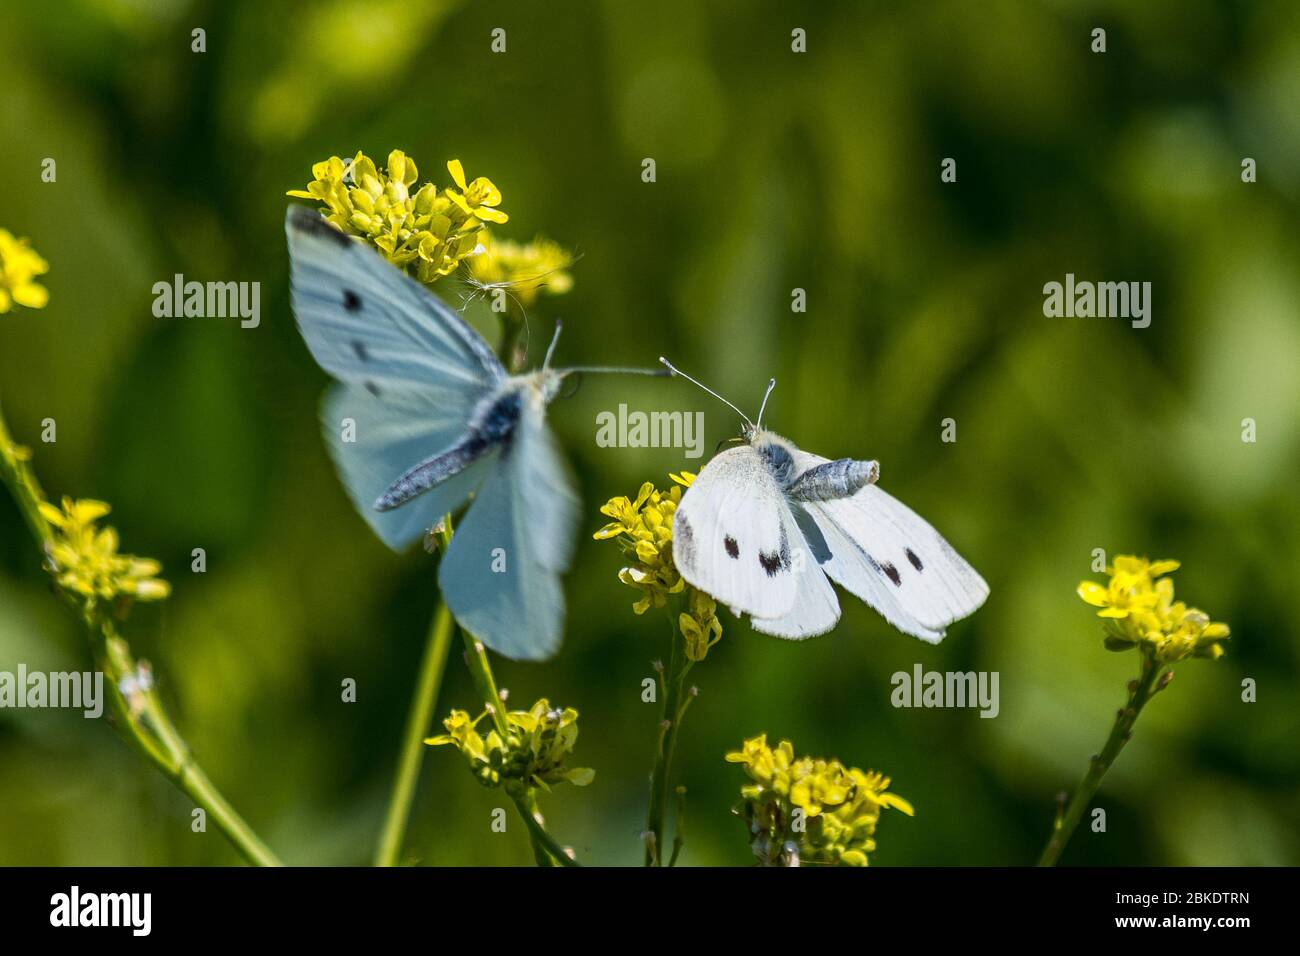 two-cabbage-white-butterflies-pieris-rapae-at-the-merced-national-wildlife-refuge-in-the-central-valley-of-caifornia-usa-2BKDTRN.jpg